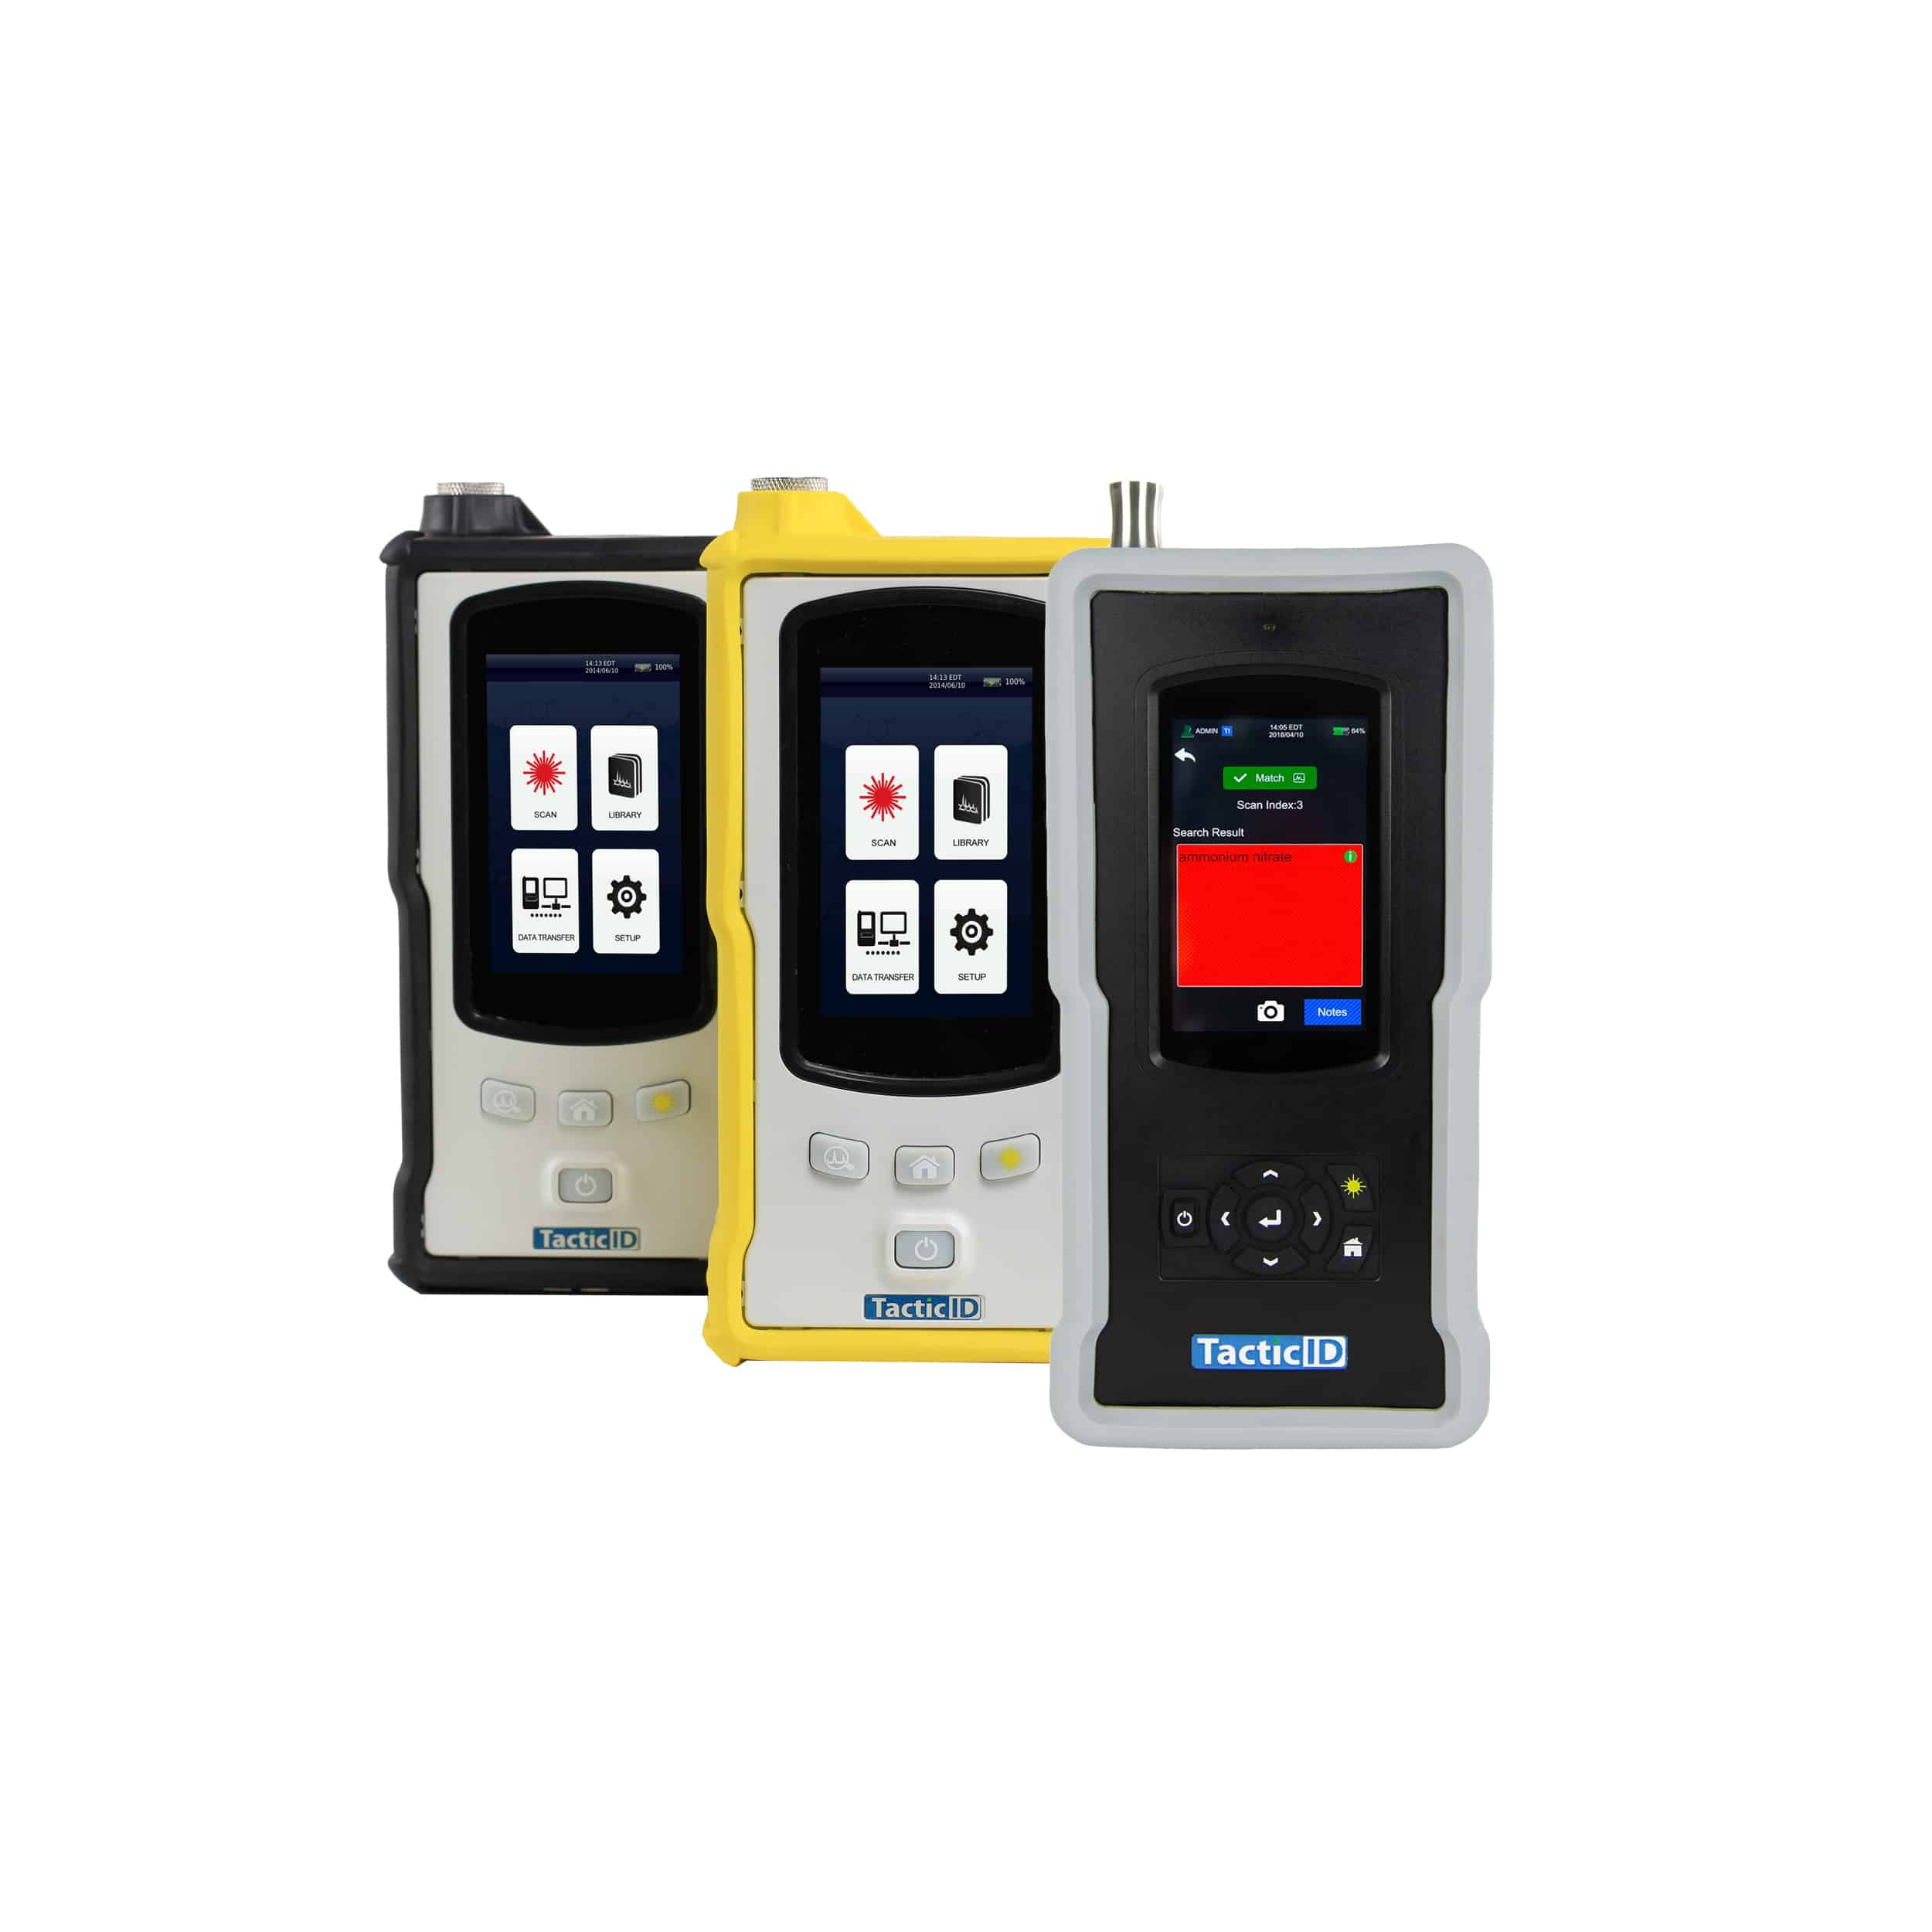 Handheld Raman analyzer for explosives, hazardous and chemical materials